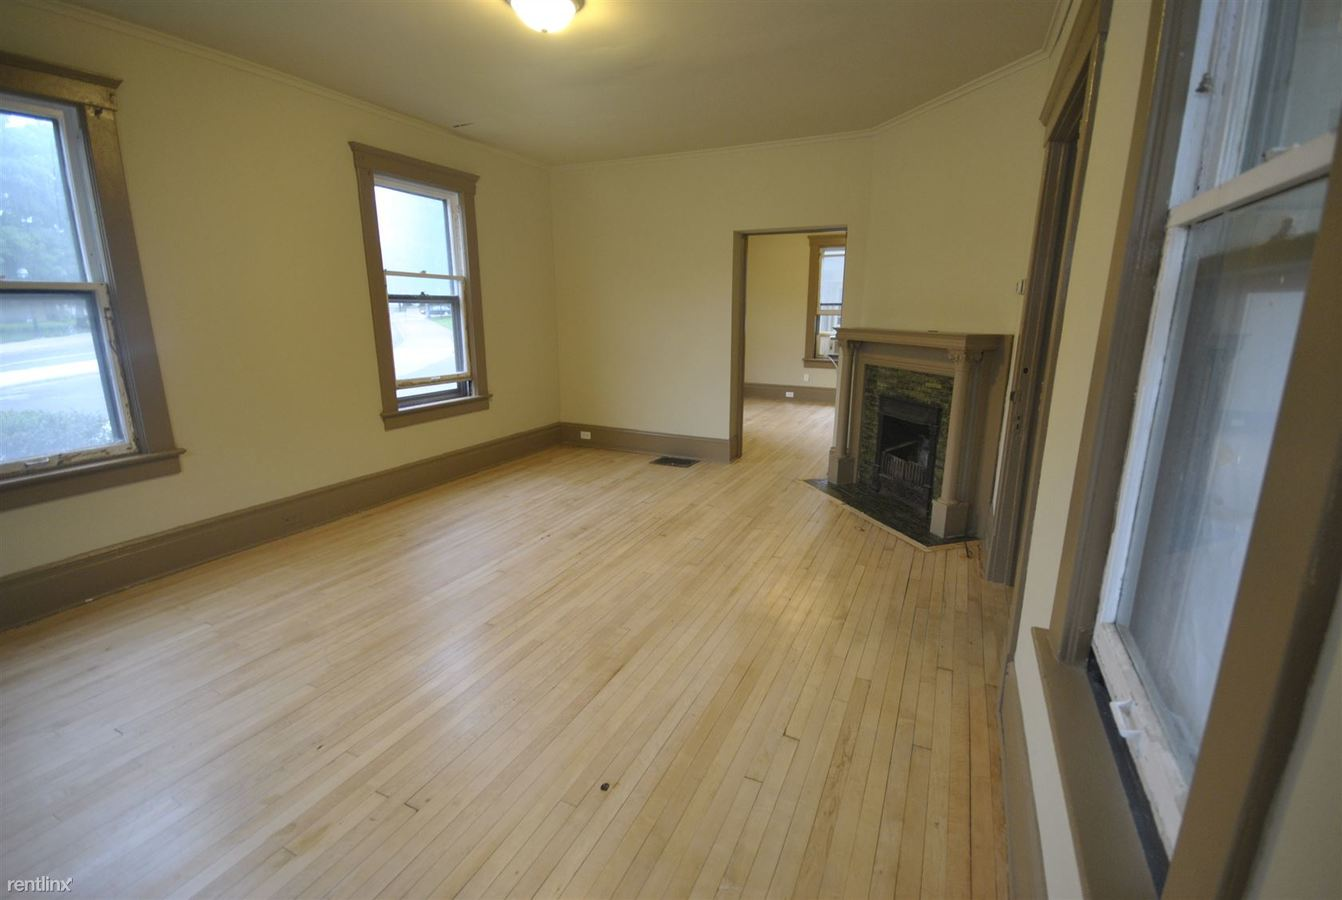 5 Bedrooms 2 Bathrooms House for rent at 403 Church St in Ann Arbor, MI